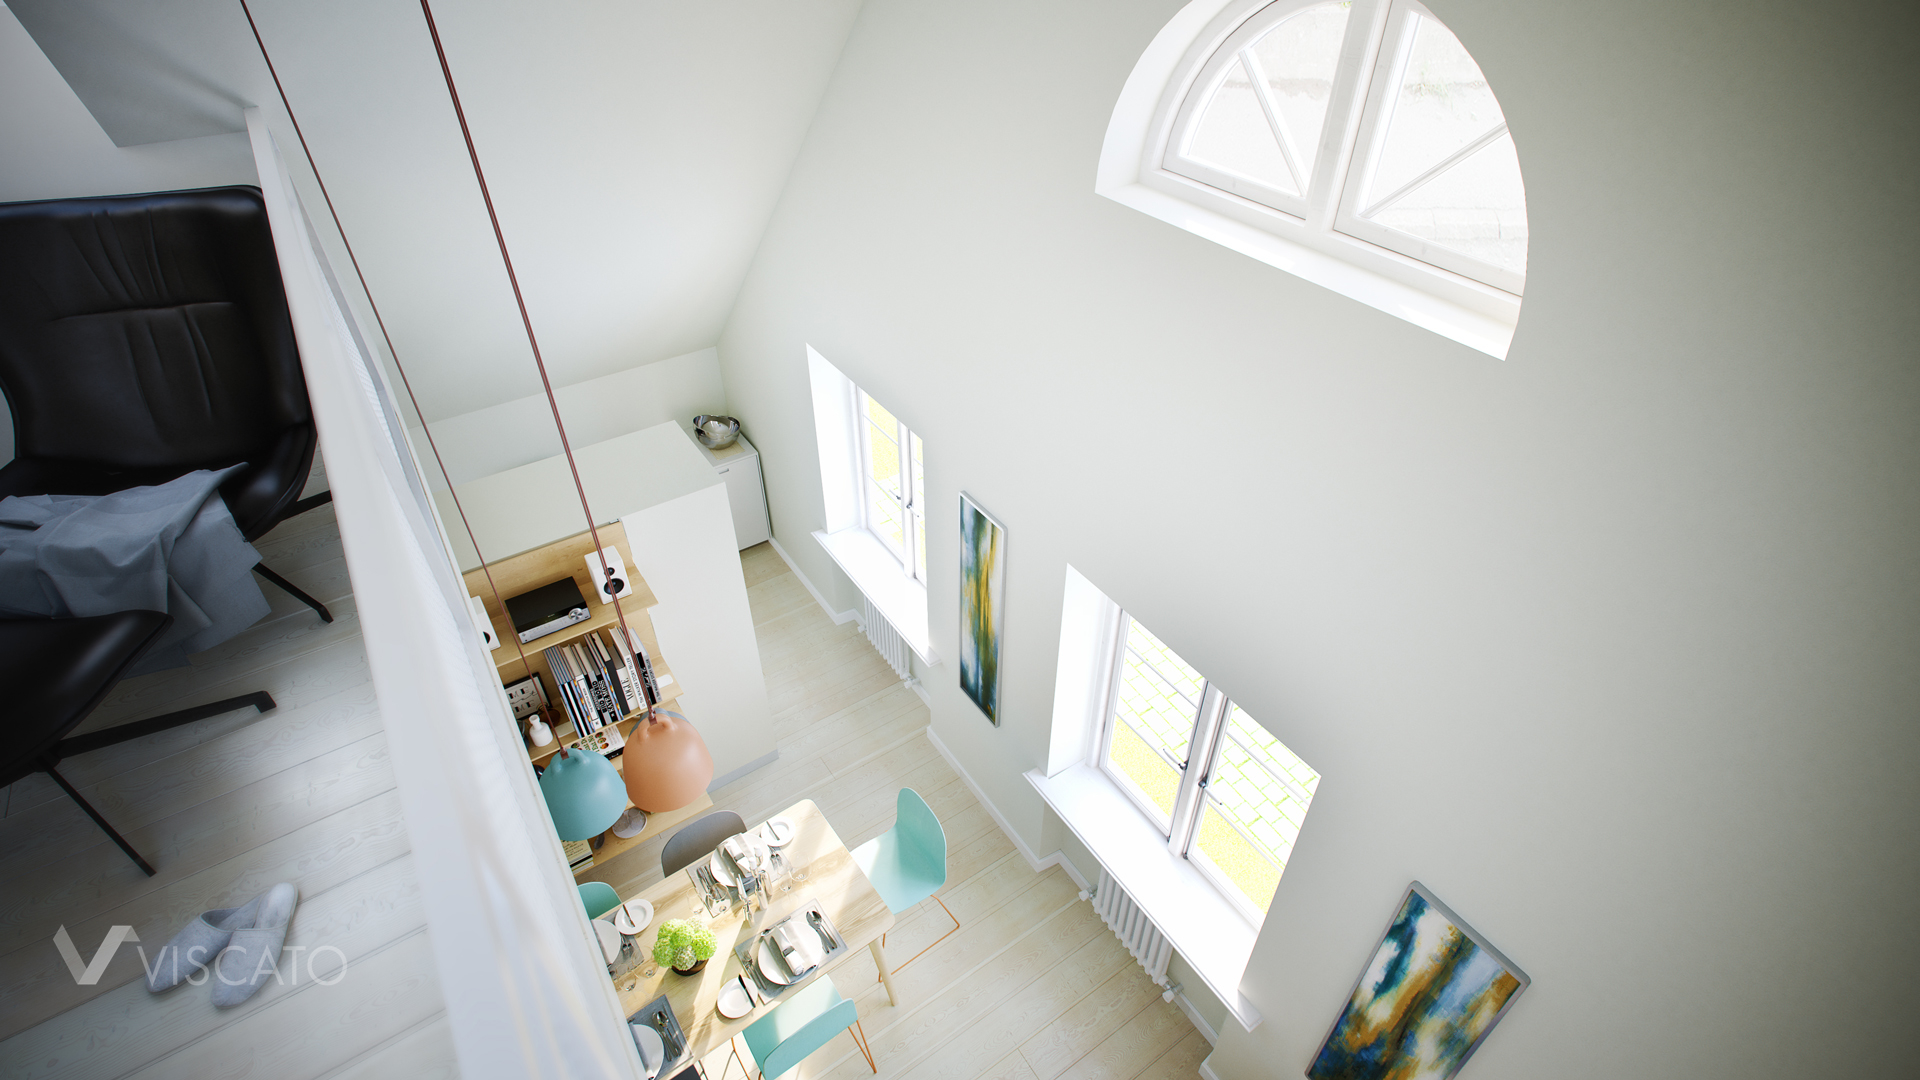 3D Image of attic space situated in modern house Viscato